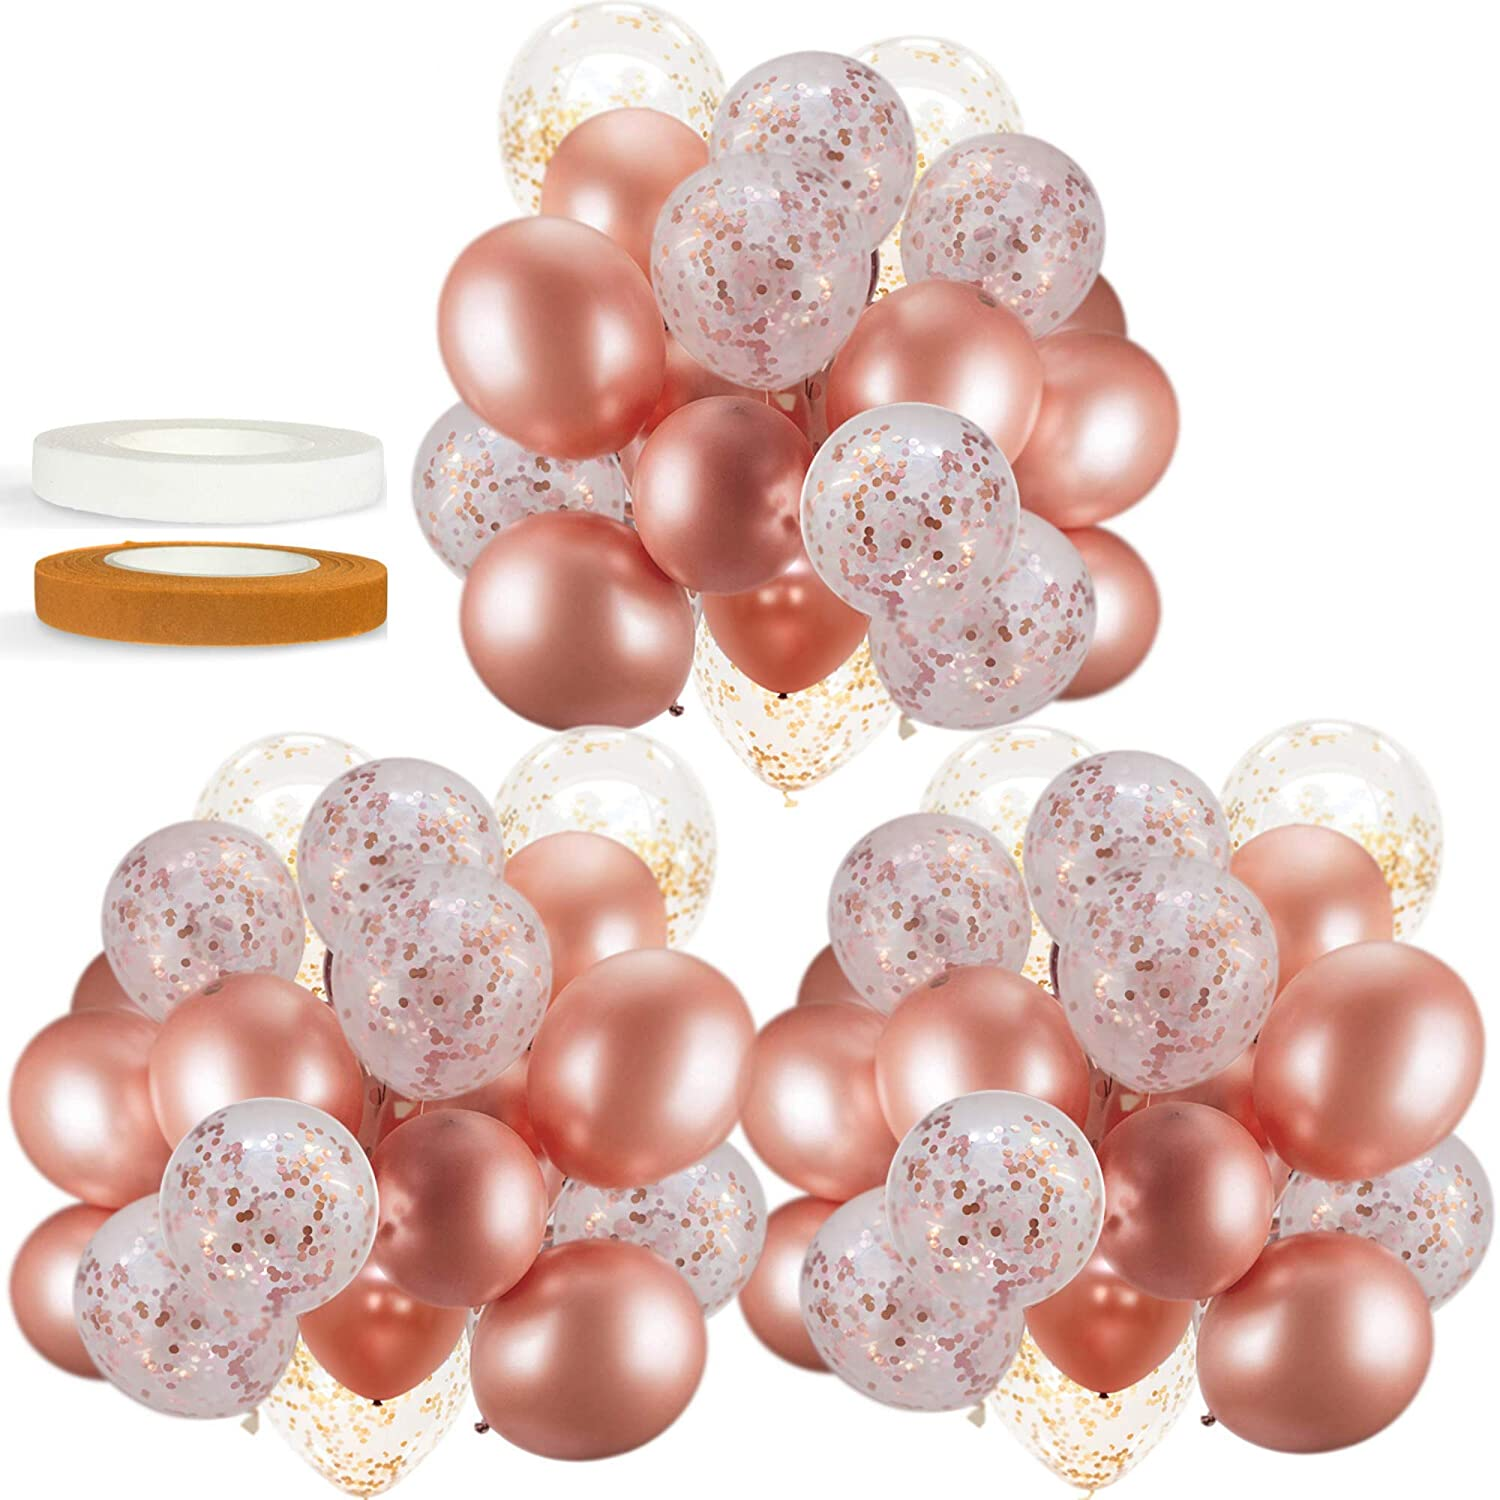 60 PACK Dandy Decor Rose Gold Balloons + Confetti Balloons w/ Ribbon | Rosegold Balloons for Parties | Bridal & Baby Shower Balloon Decorations | Latex Party Balloons | Graduation, Engagement, Wedding: Health & Personal Care